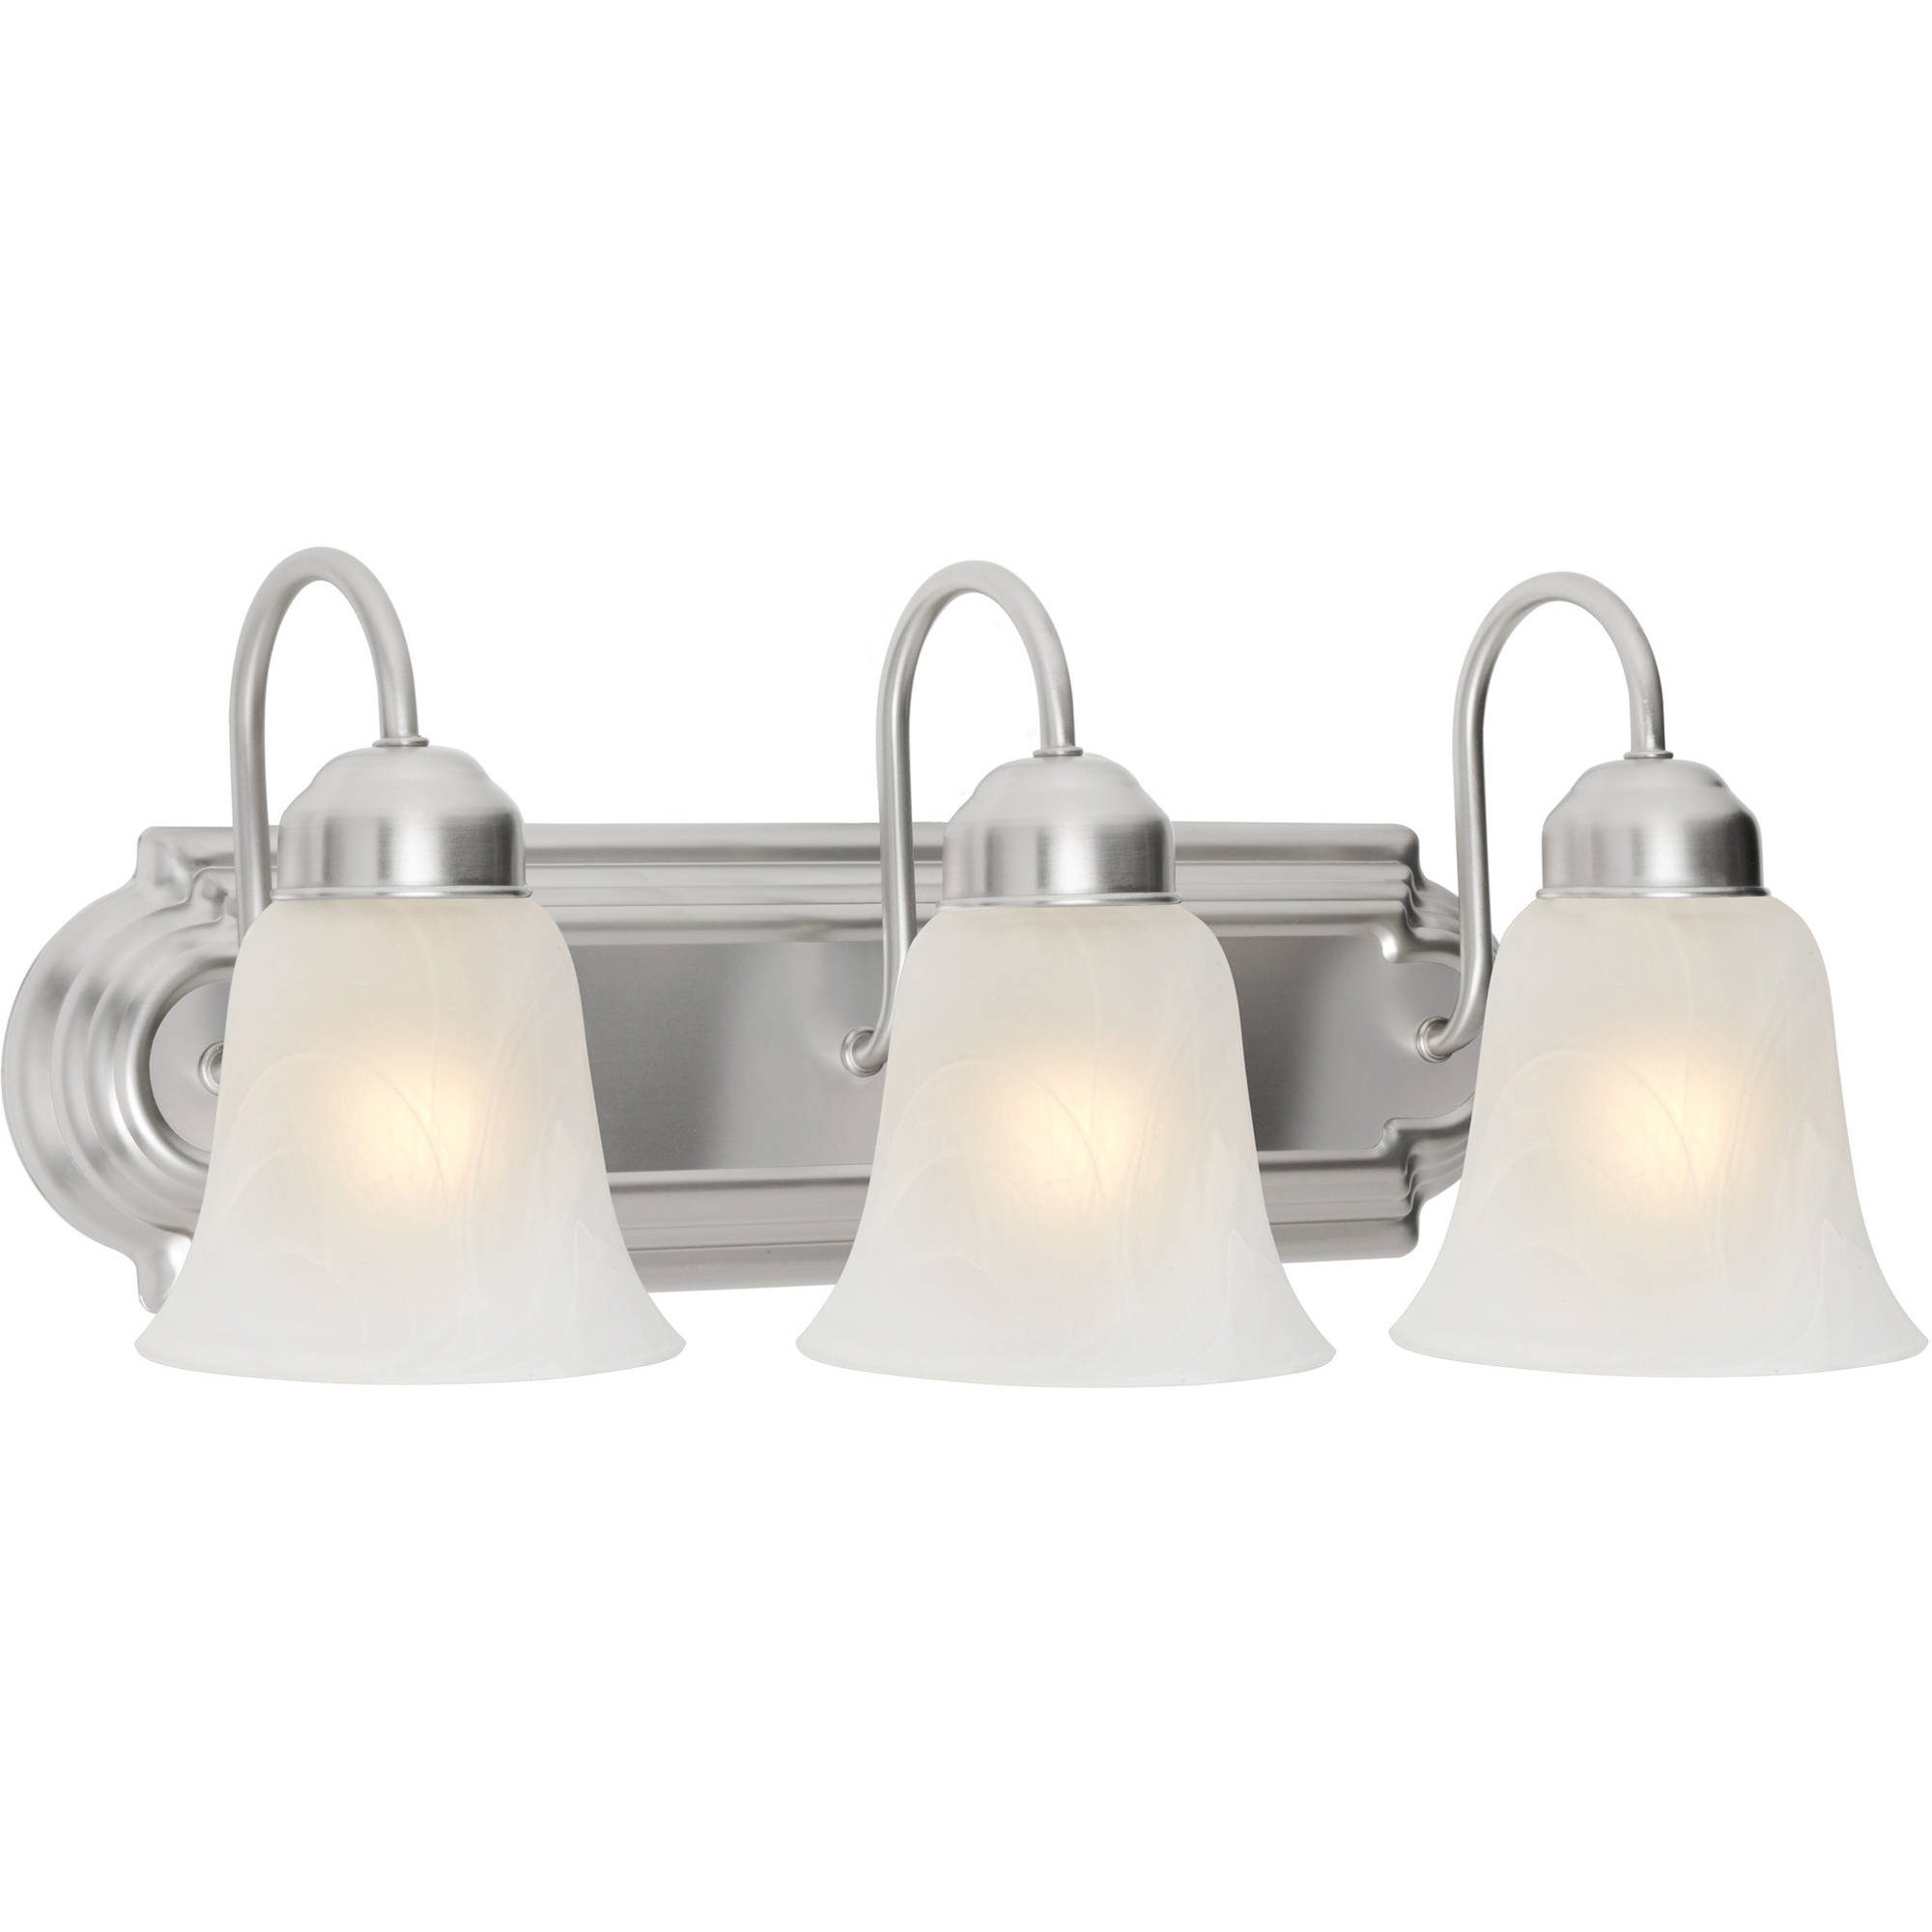 walmart bathroom lighting chapter 3 light bathroom vanity light satin nickel 15007